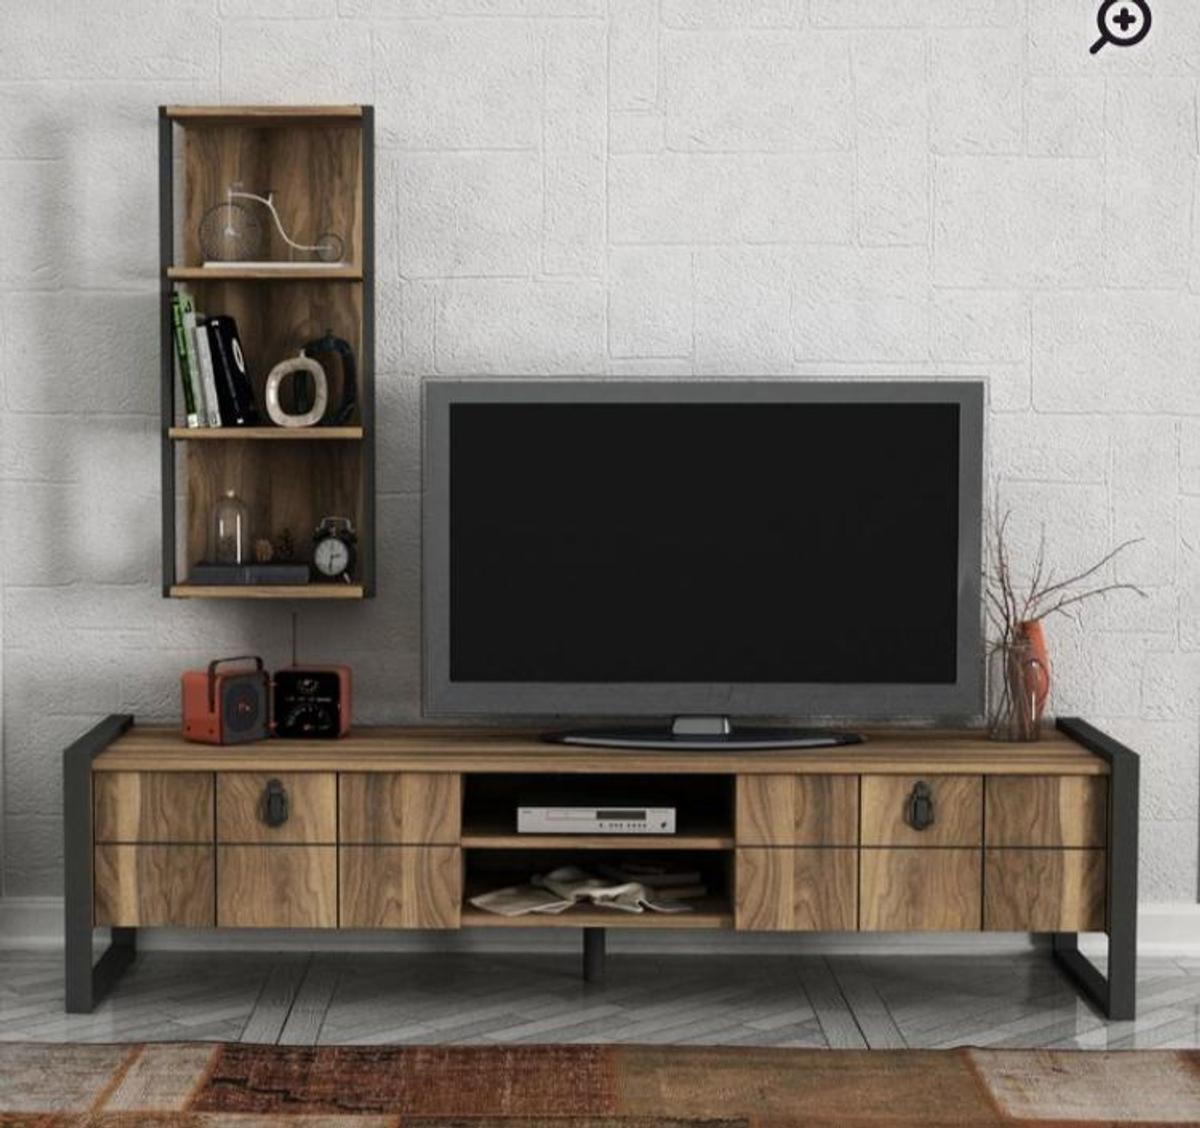 Tv Entertainment Unit Brand New In Wigan For 150 00 For Sale Shpock